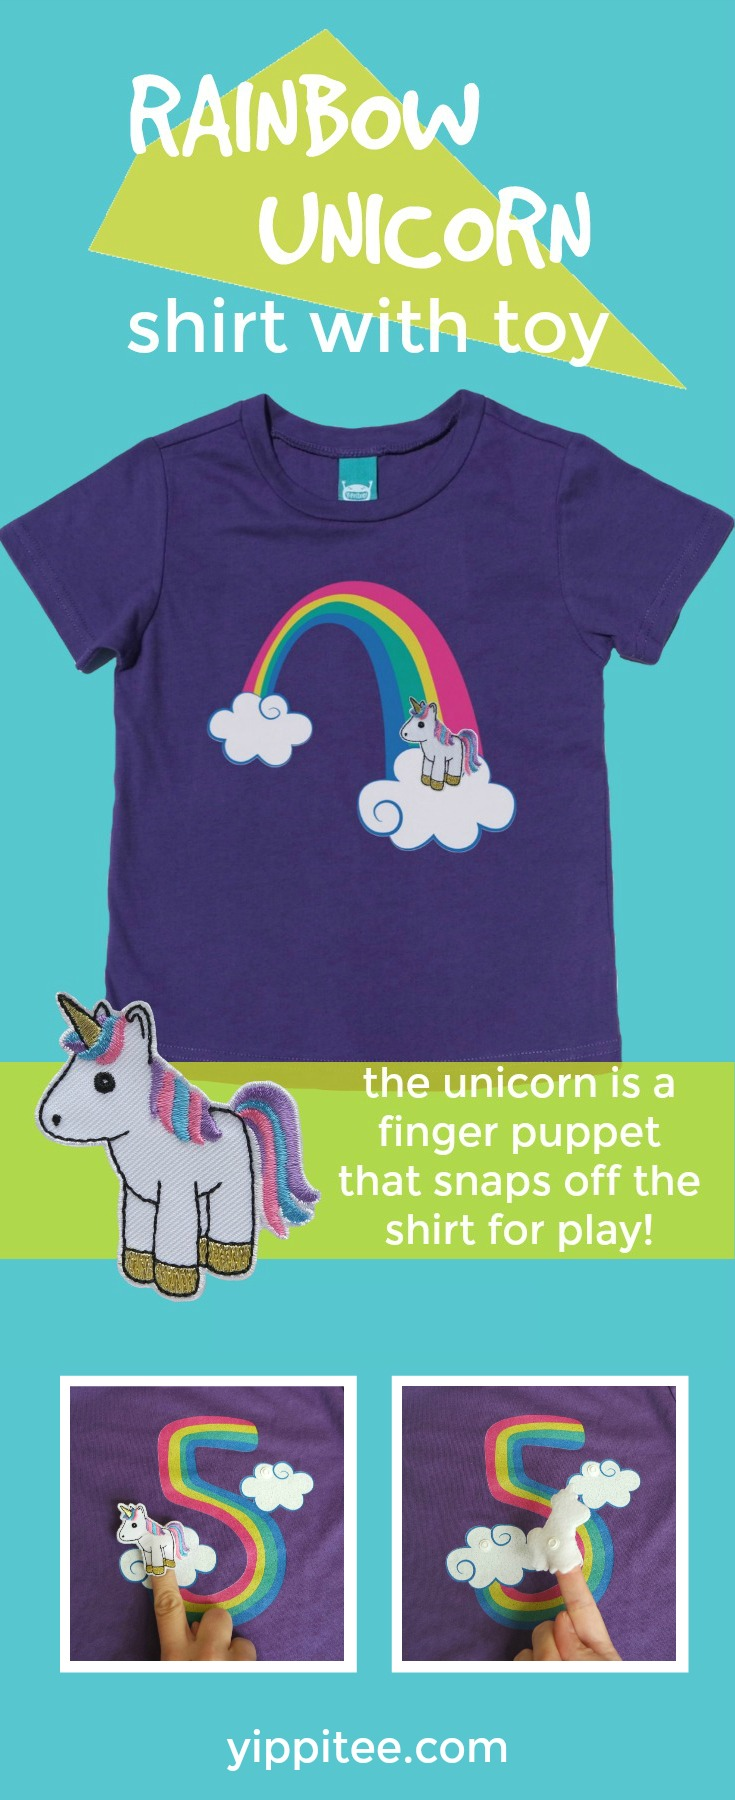 This adorable unicorn birthday t-shirt has a detachable unicorn finger puppet! Available in youth through adult sizes for unicorn lovers of any age! #unicornparty #unicornbirthday #unicornshirt #rainbowunicorn #rainbowbirthday // girls unicorn t shirt, unicorn shirt, rainbow unicorn shirt, kids birthday shirts, birthday girl shirt, birthday boy shirt, toddler birthday shirt #birthdayshirt #kidsbirthdayshirts #birthdaygirl #birthdayboy #toddlerbirthday